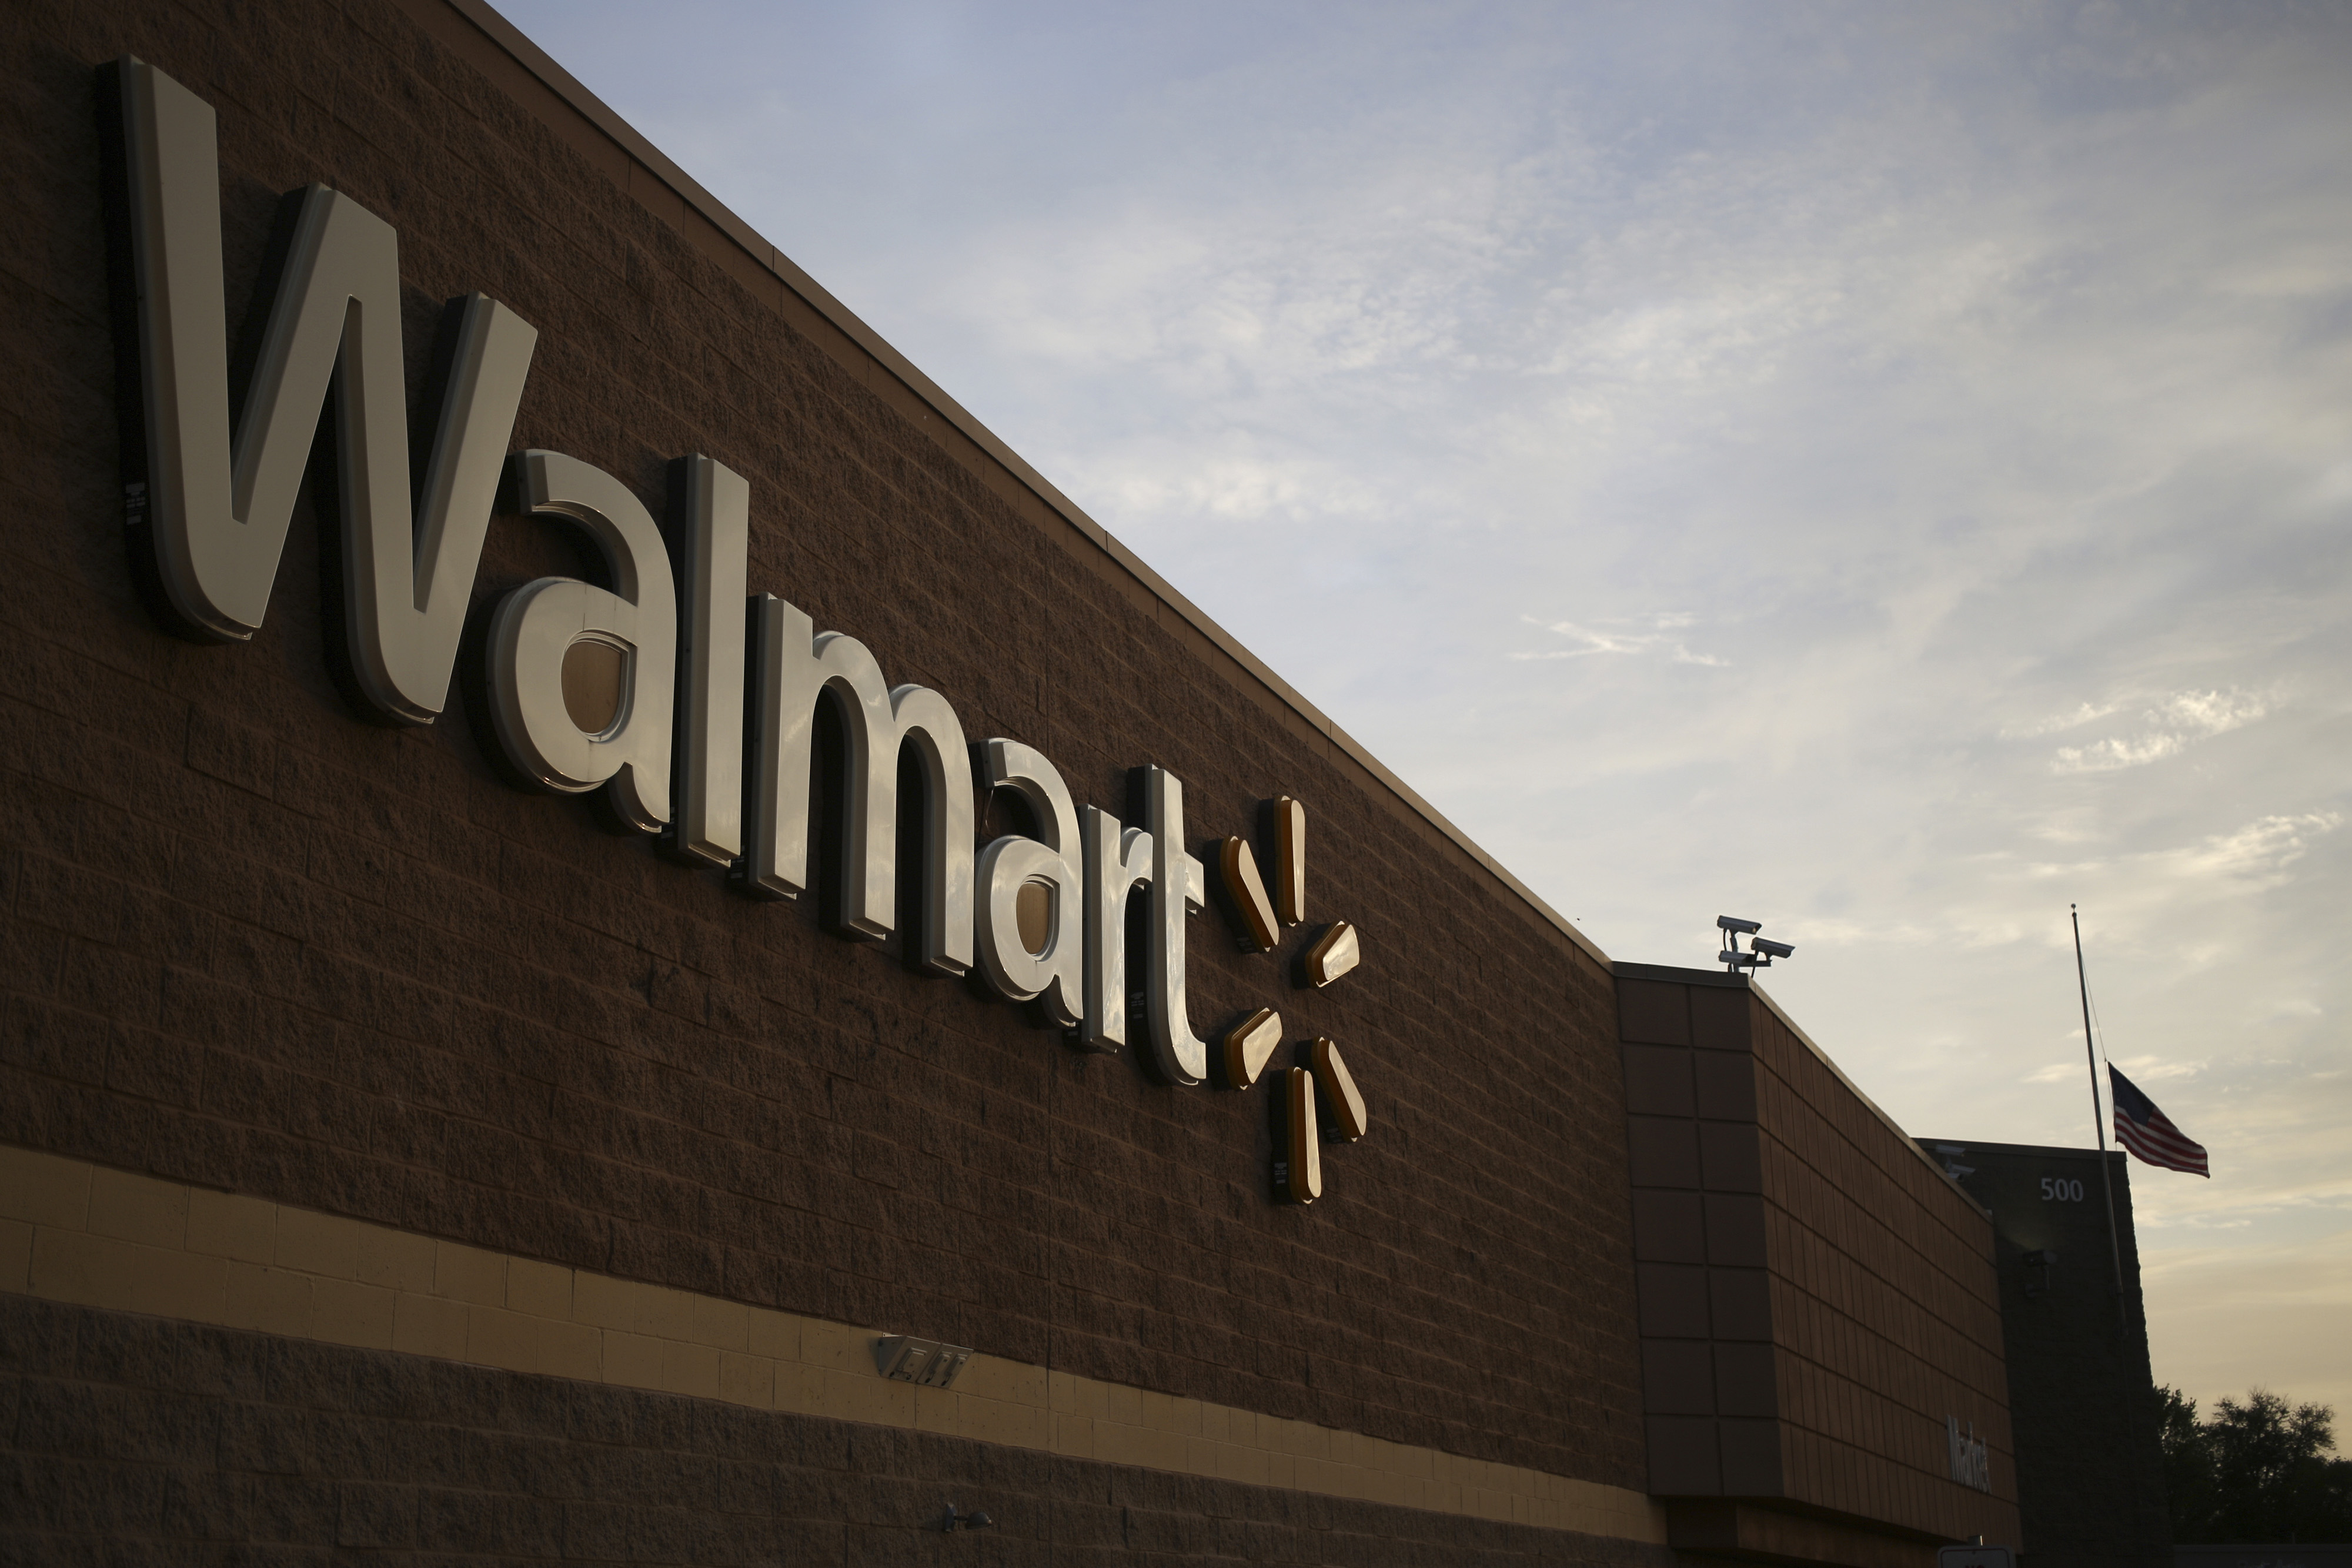 Signage is displayed on the exterior of a Wal-Mart Stores, Inc. retail location in Shelbyville, Kentucky, U.S. on Monday, May 18, 2015. Wal-Mart is expected to release quarterly earnings on Tuesday, May 19. Photographer : Luke Sharrett / Bloomberg